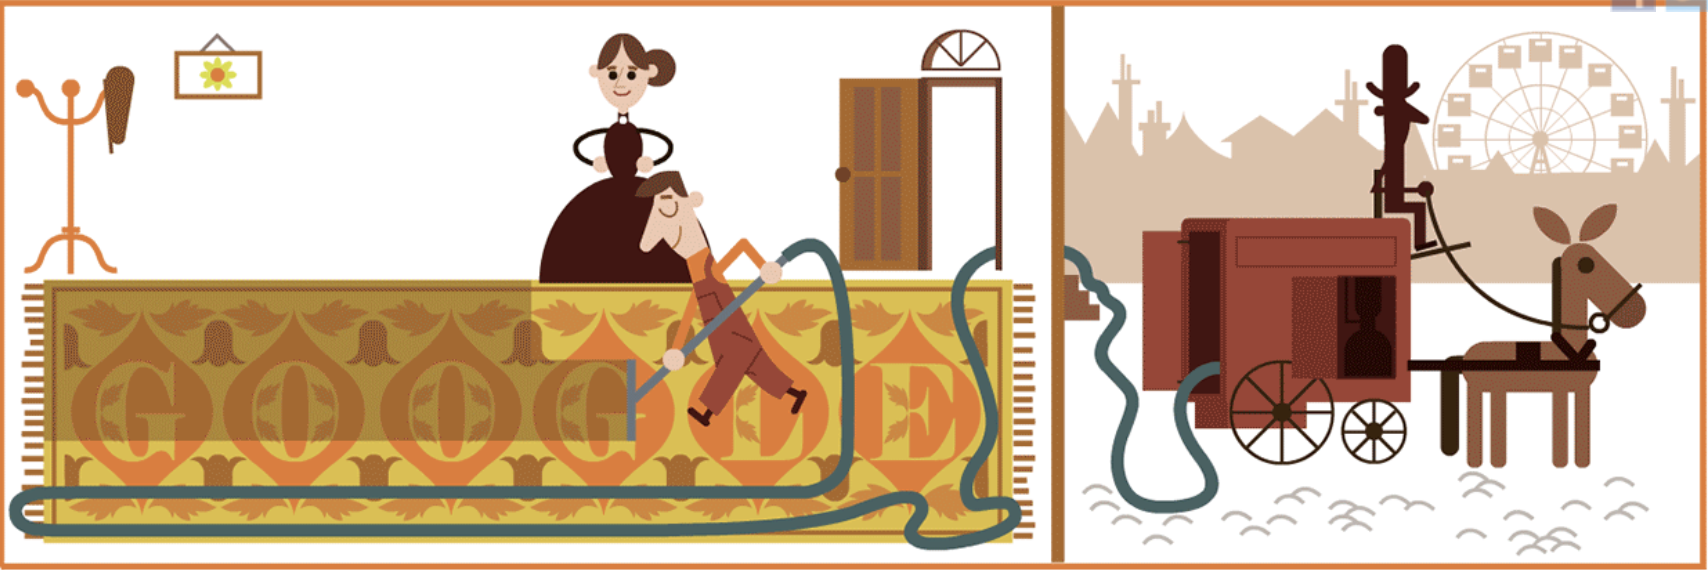 Google Doodle celebrates British engineer Hubert Cecil Booth, inventor of the vacuum cleaner on July 4, 2018.